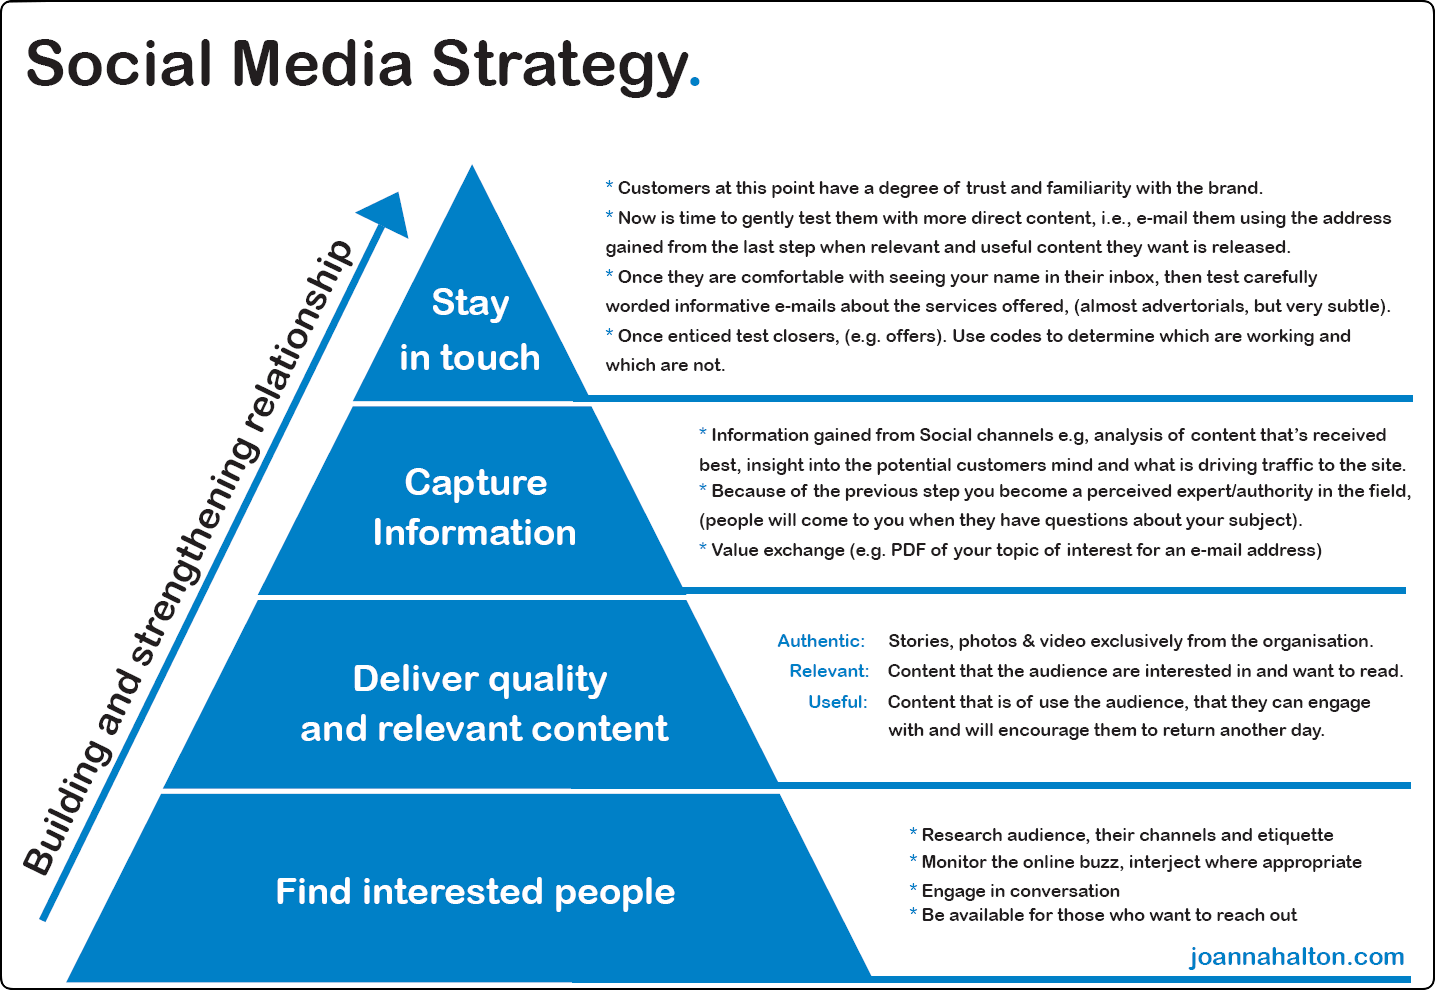 social media strategy example   Manqal.hellenes.co